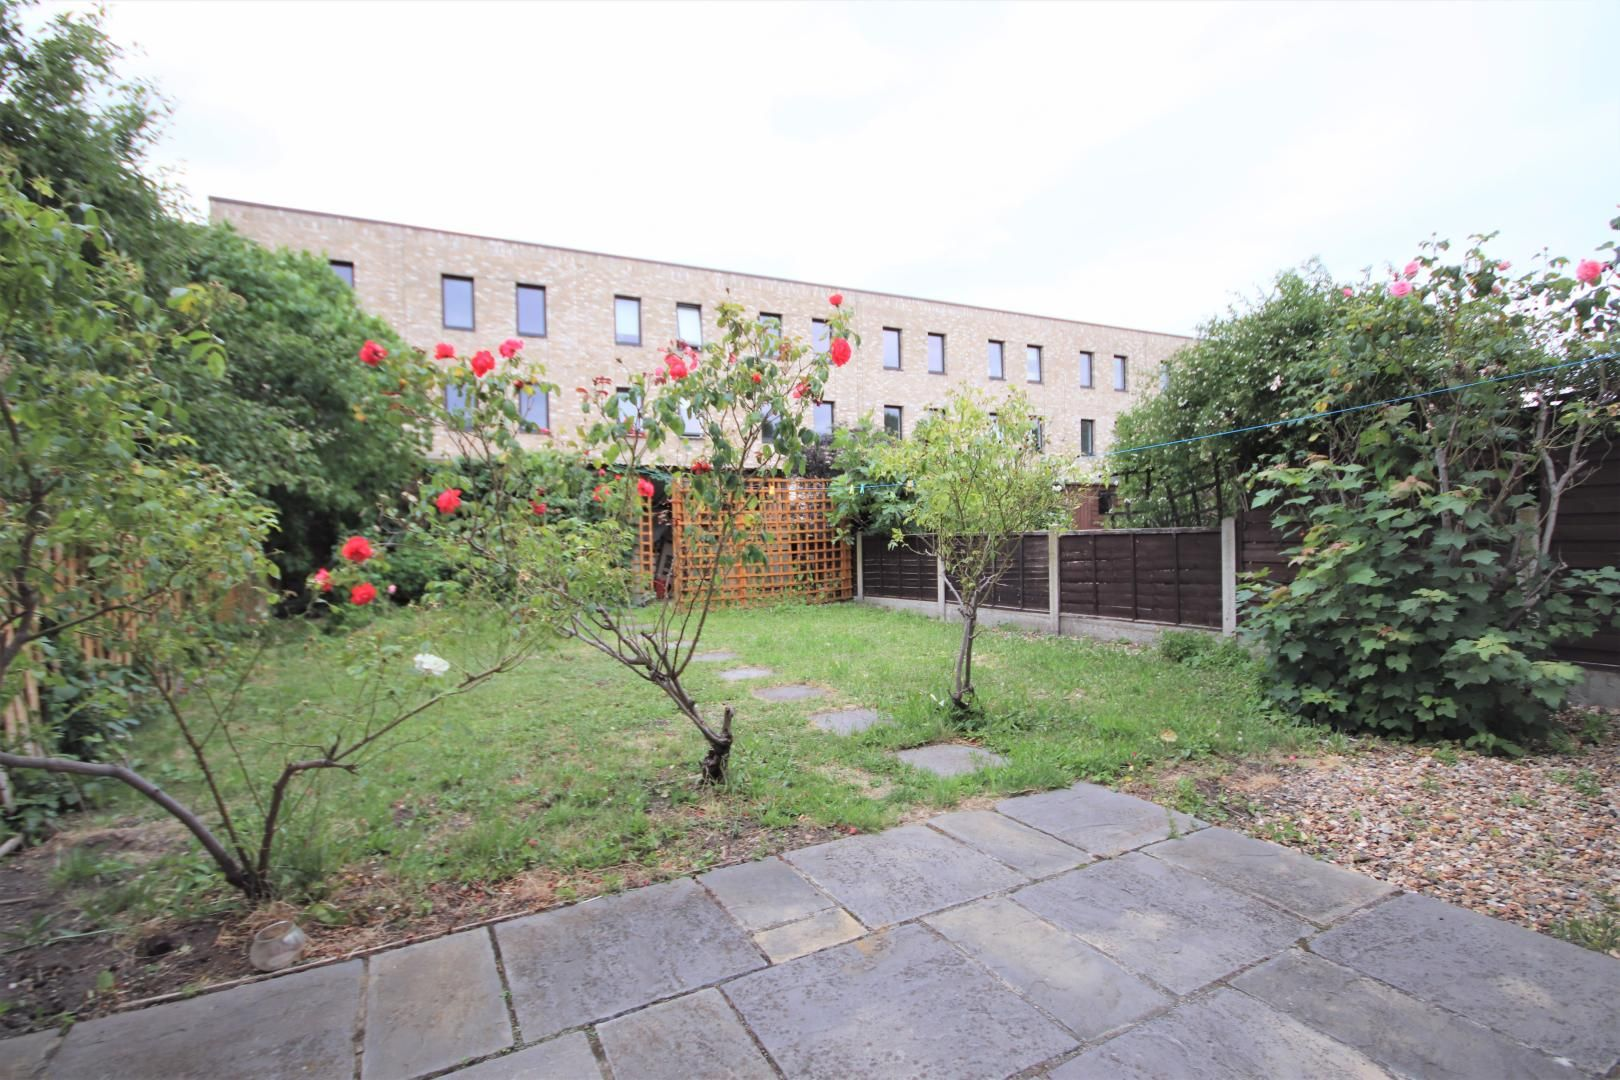 4 bed house to rent in Chapel House Street, E14